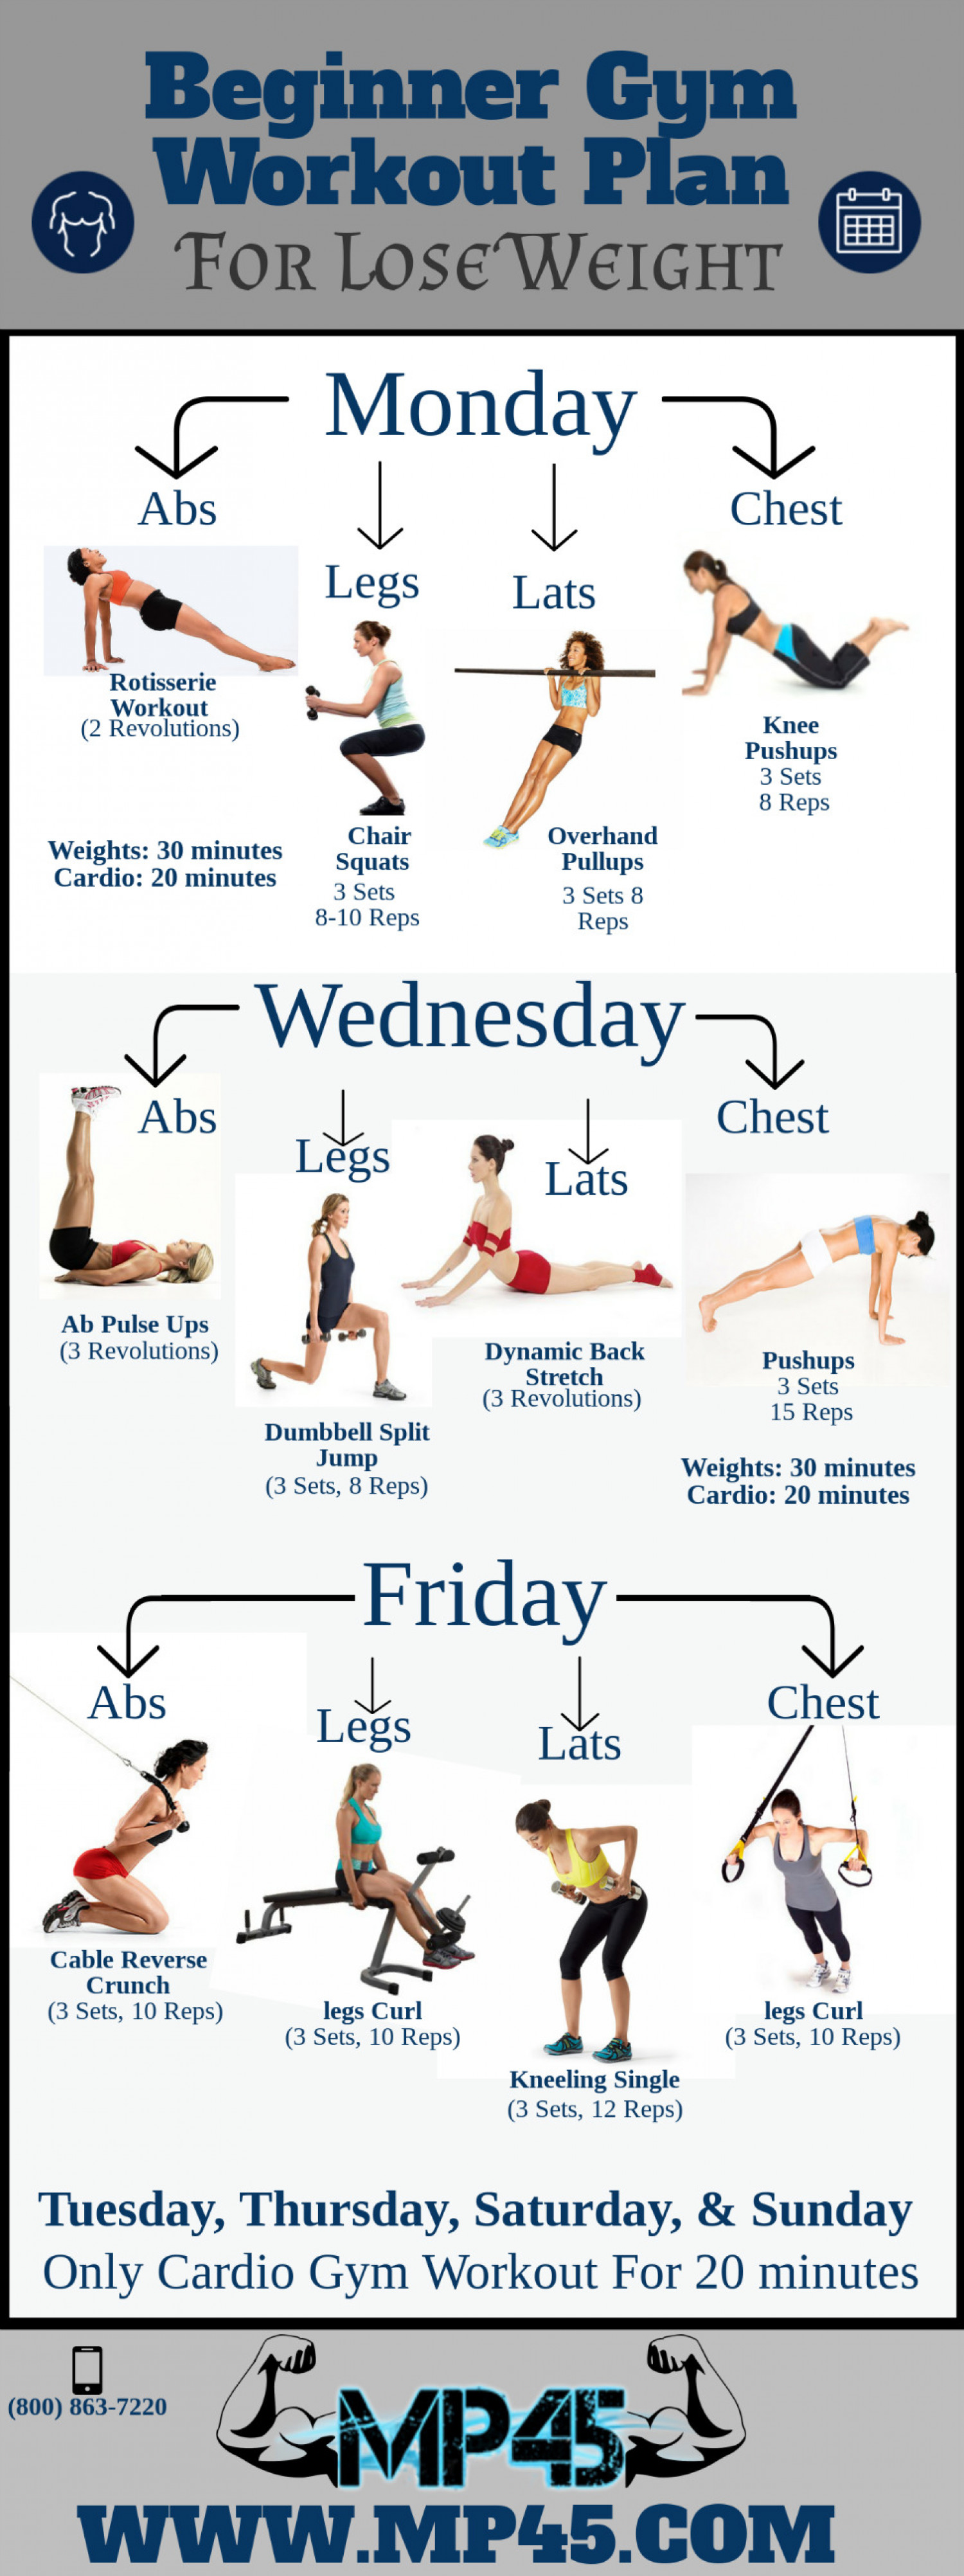 Gym Workout Chart For Chest For Men Beginner Gym Workout Plan For Lose Weight Visual Ly